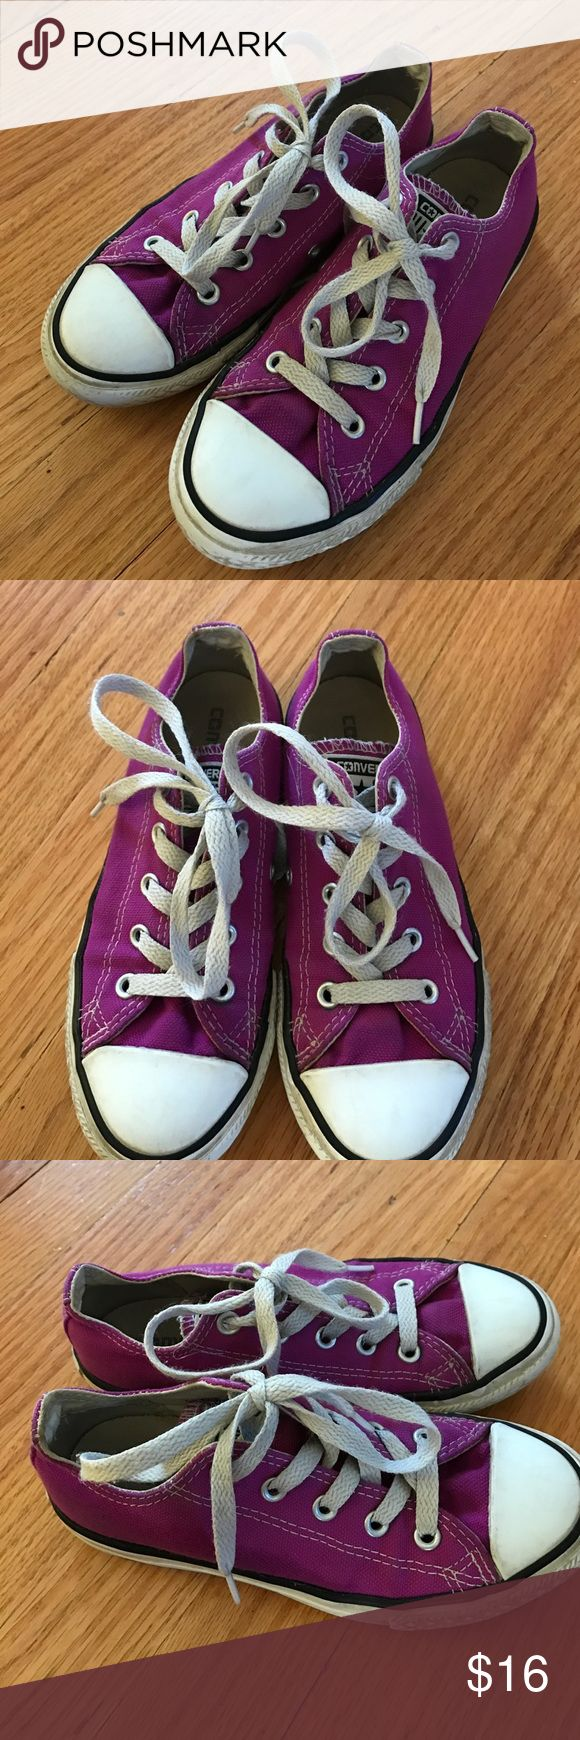 Girl's All Star Converse Sneakers Size 13 Girl's All Star Converse Sneakers Size 13. Good condition. Converse Shoes Sneakers